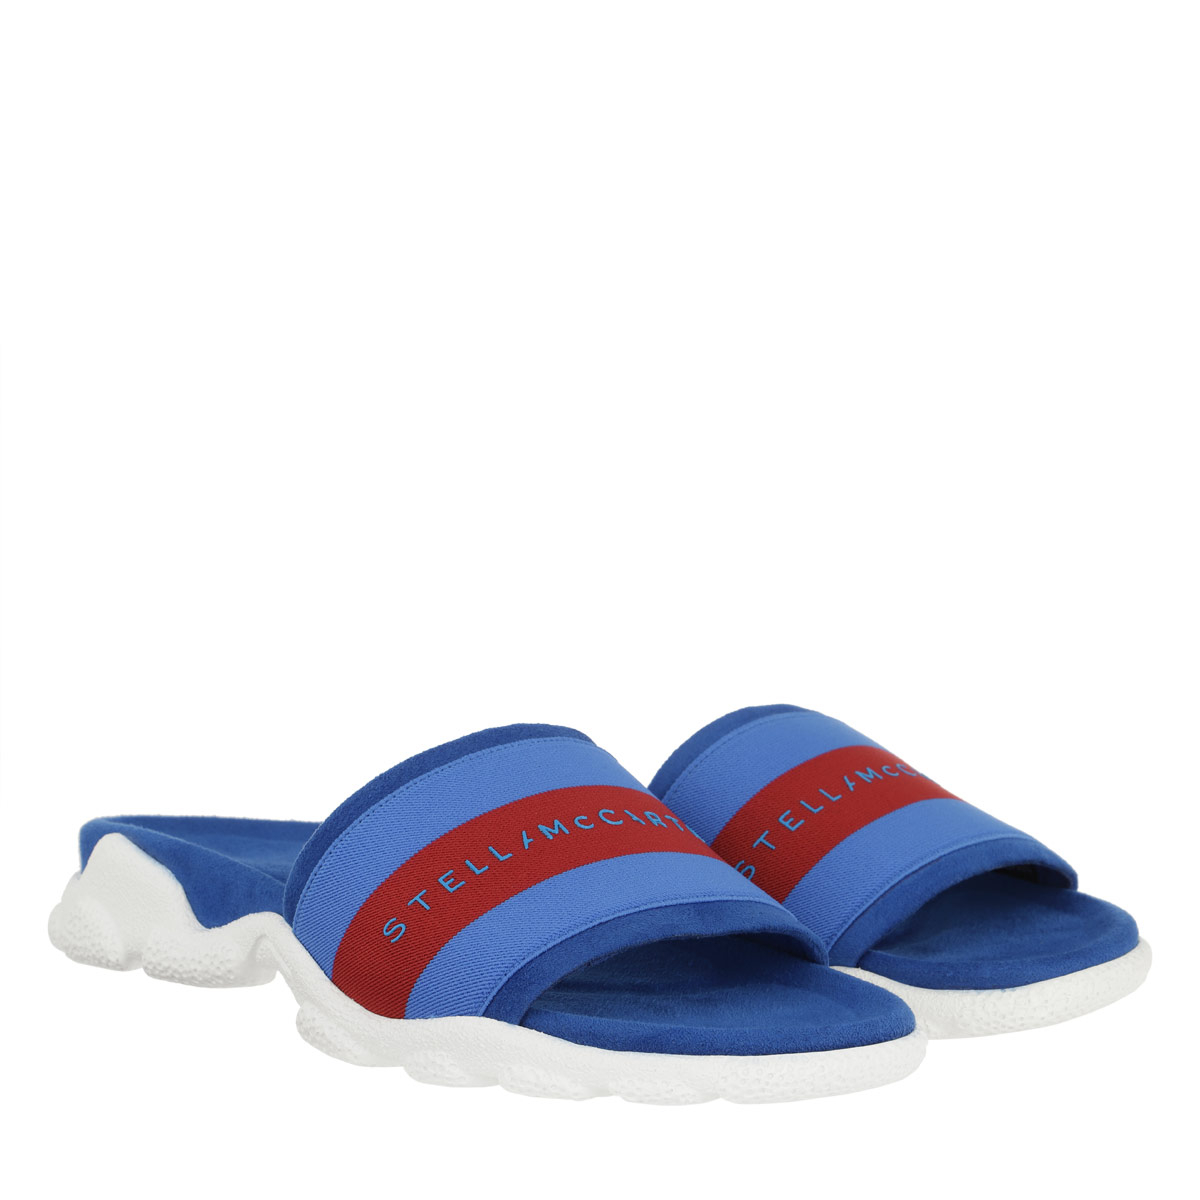 Stella McCartney Sandalen - Striped Slides Blue - in blau - für Damen